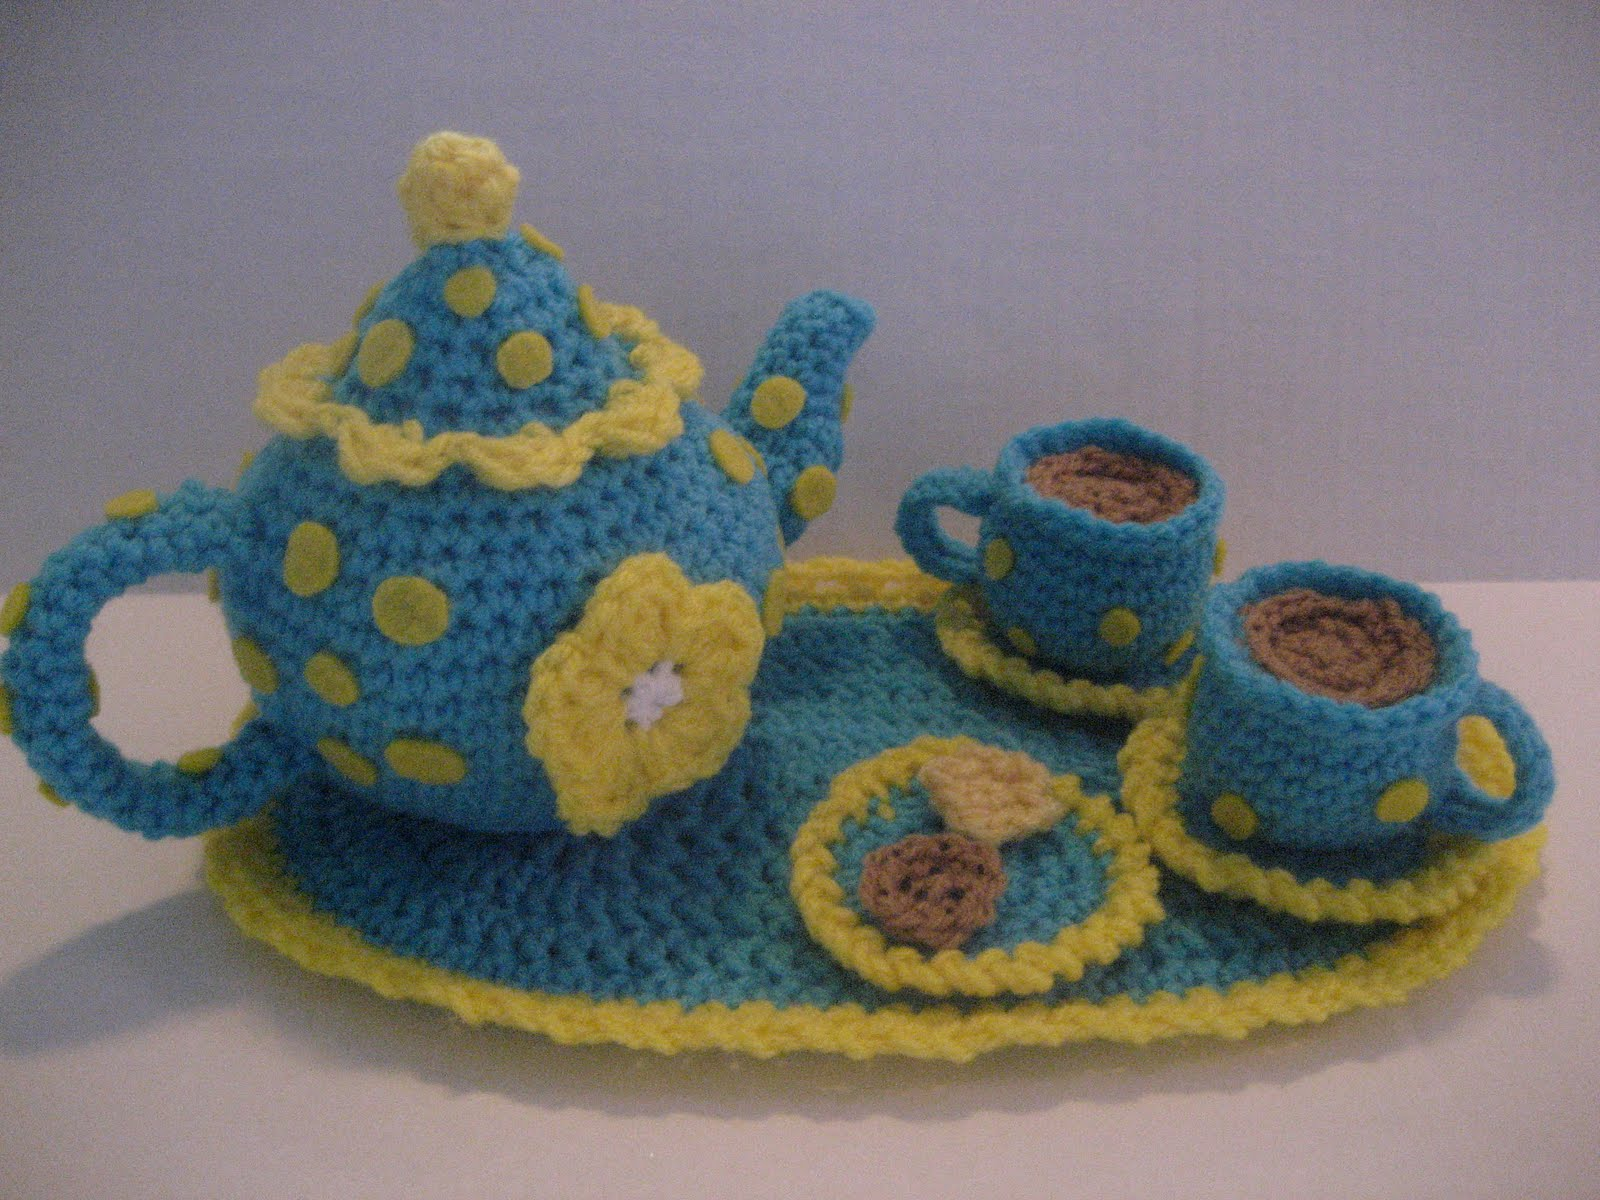 Tea for 2 Crochet tea set - Scribd